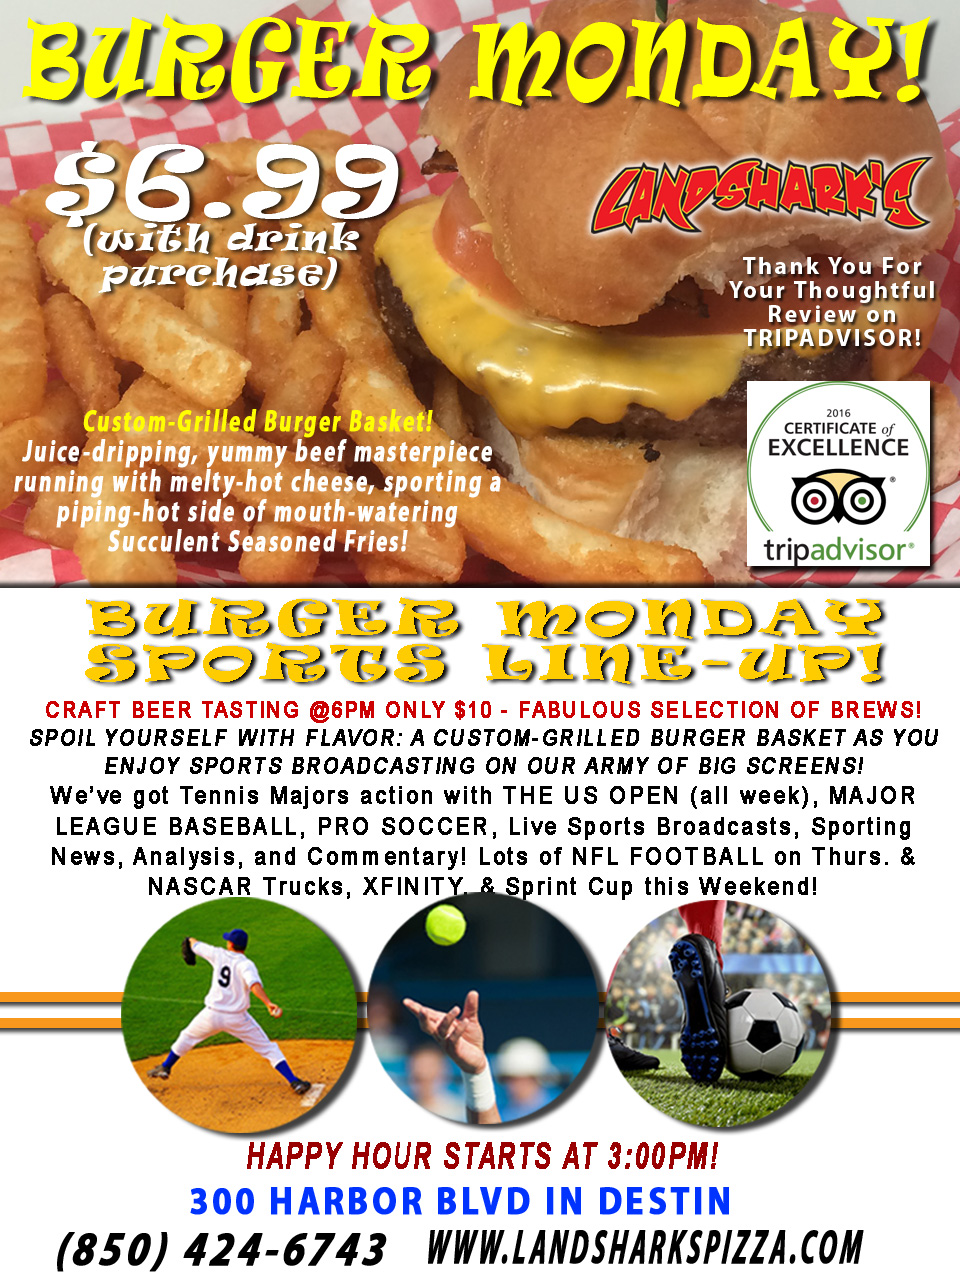 Burger Craft Beer Monday at Landshark's in Destin Florida